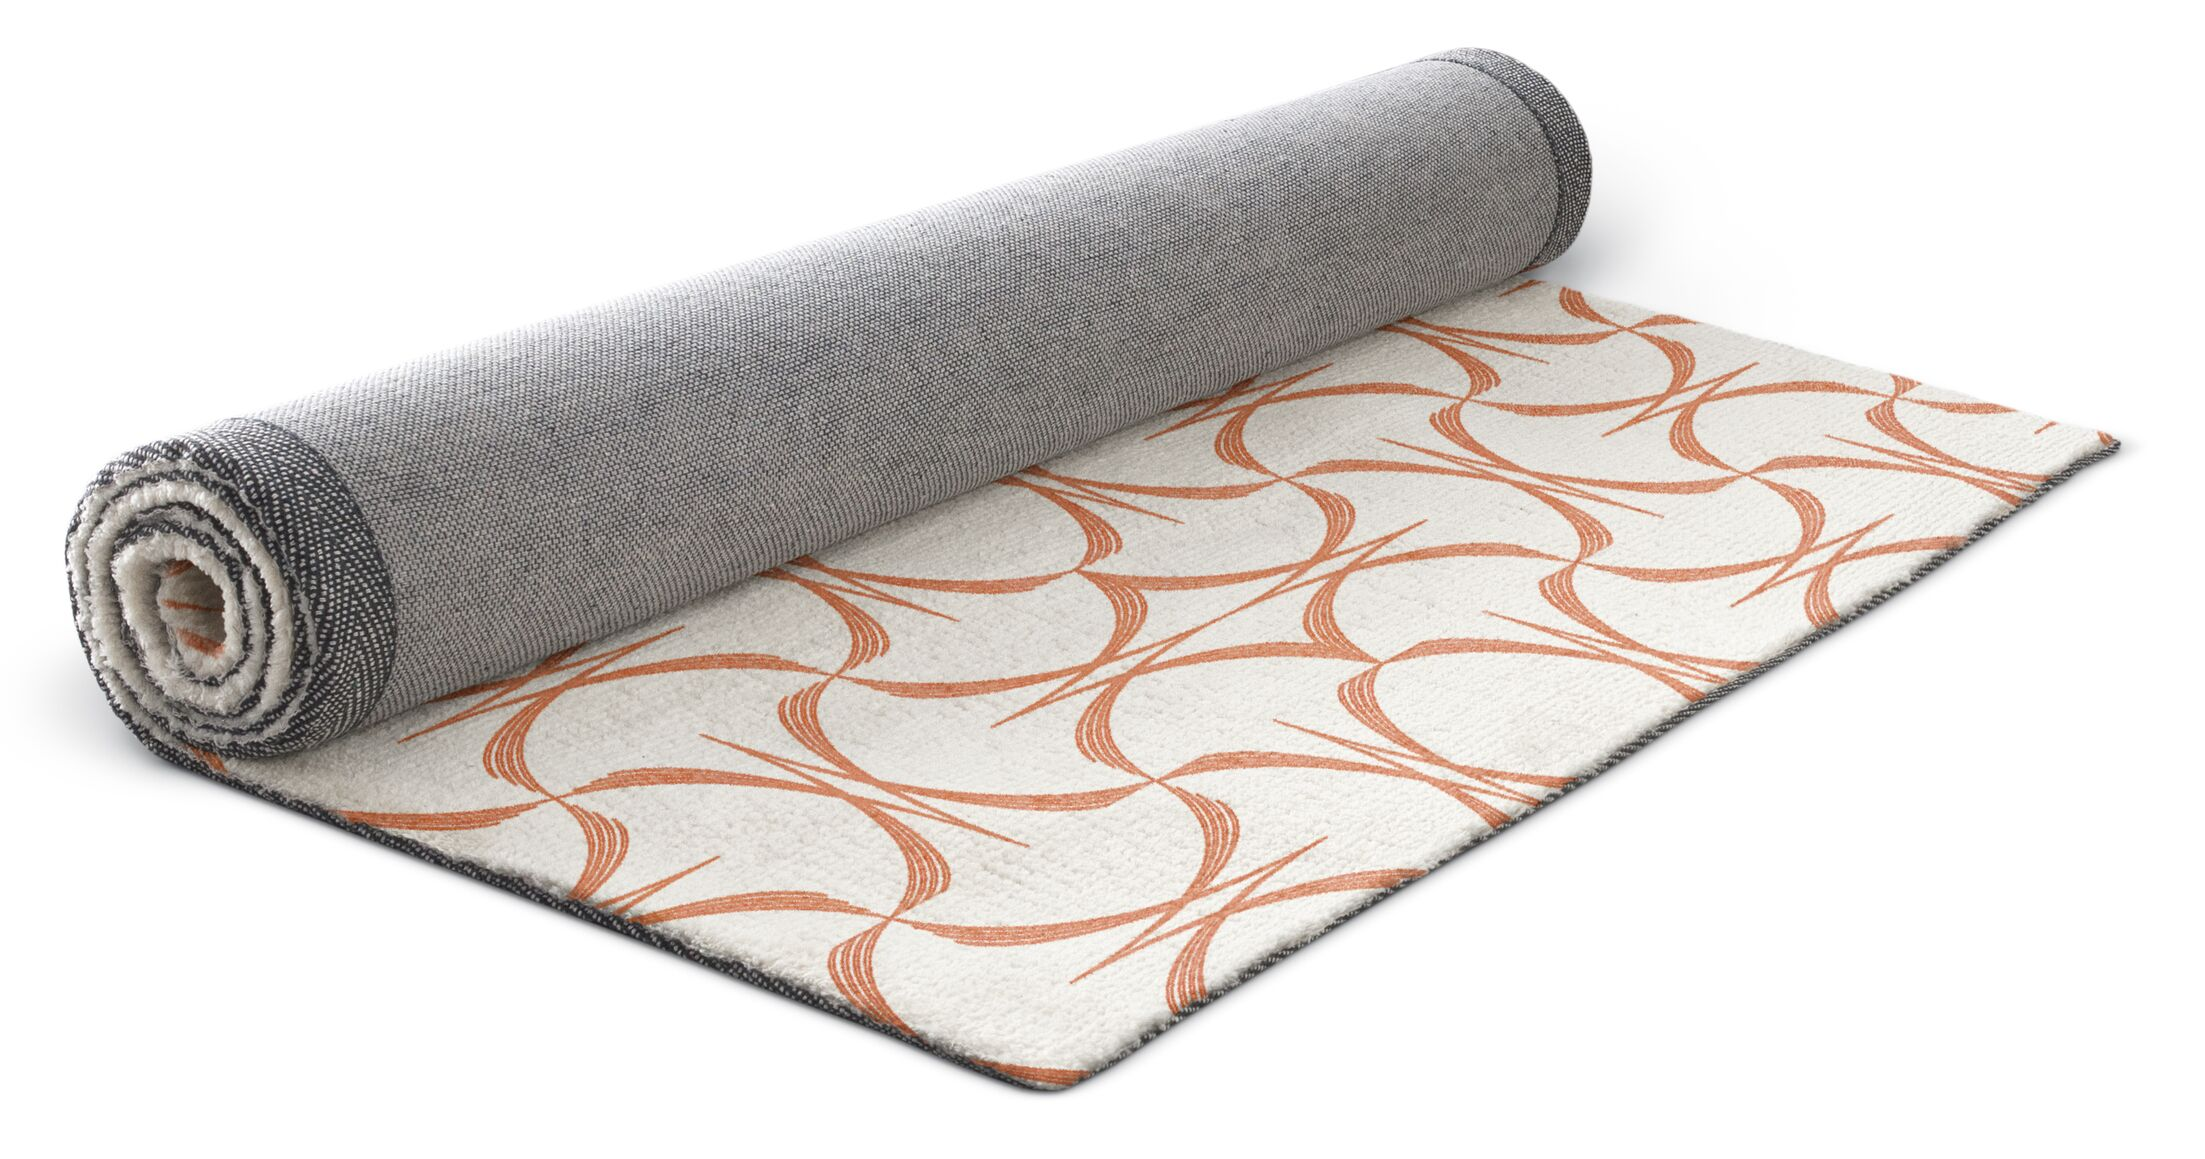 Wattisham Tangerine Area Rug Size: Rectangle 2' x 3'